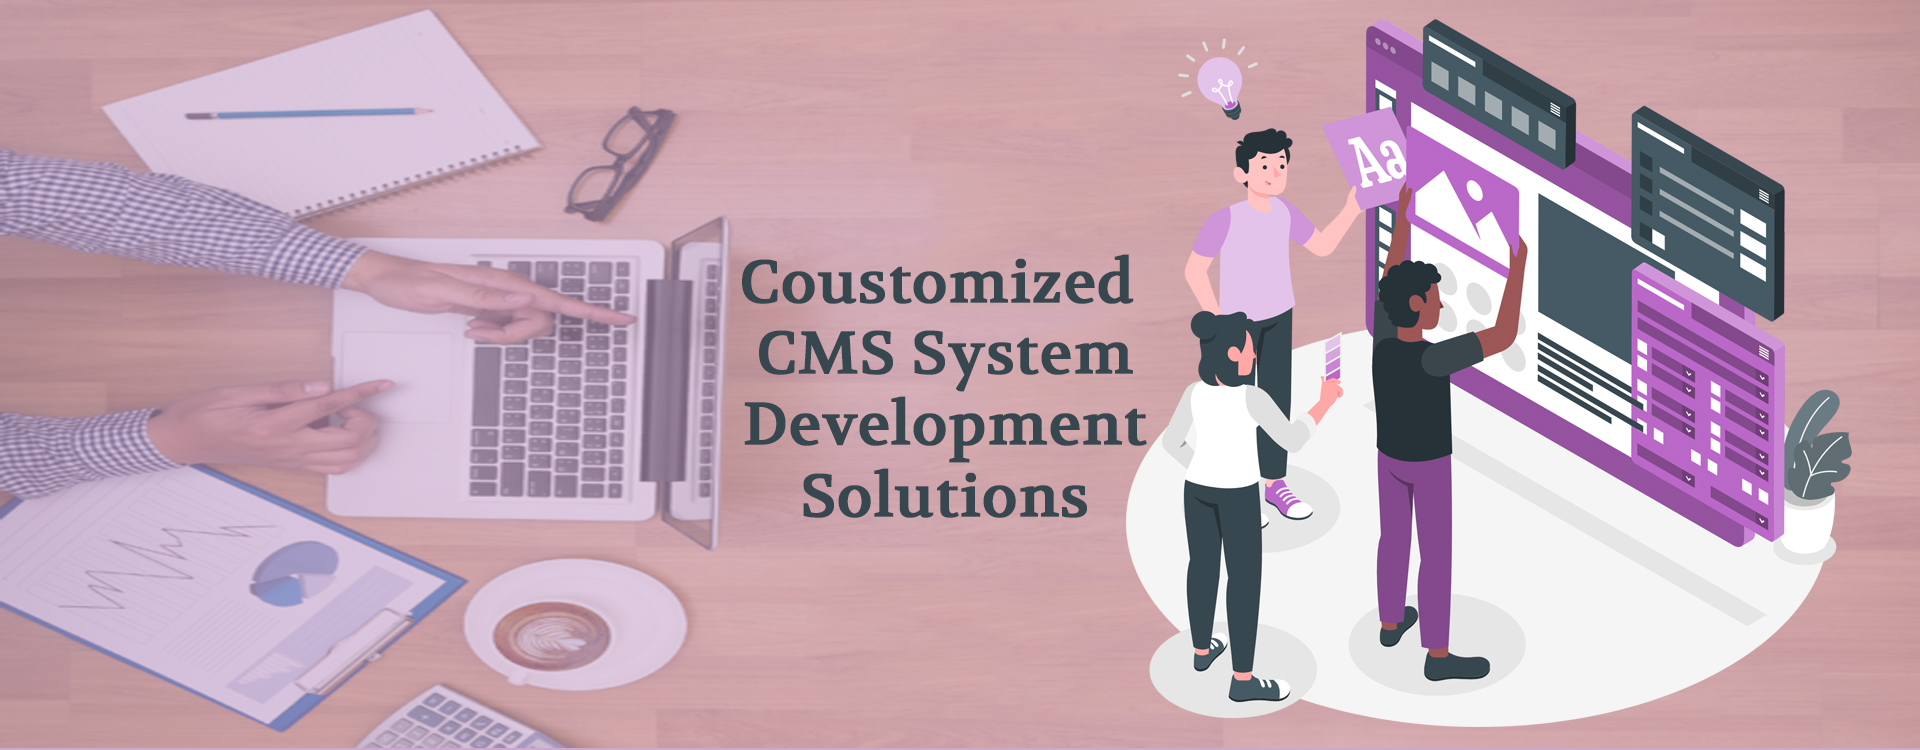 CMS Website Design Development Services